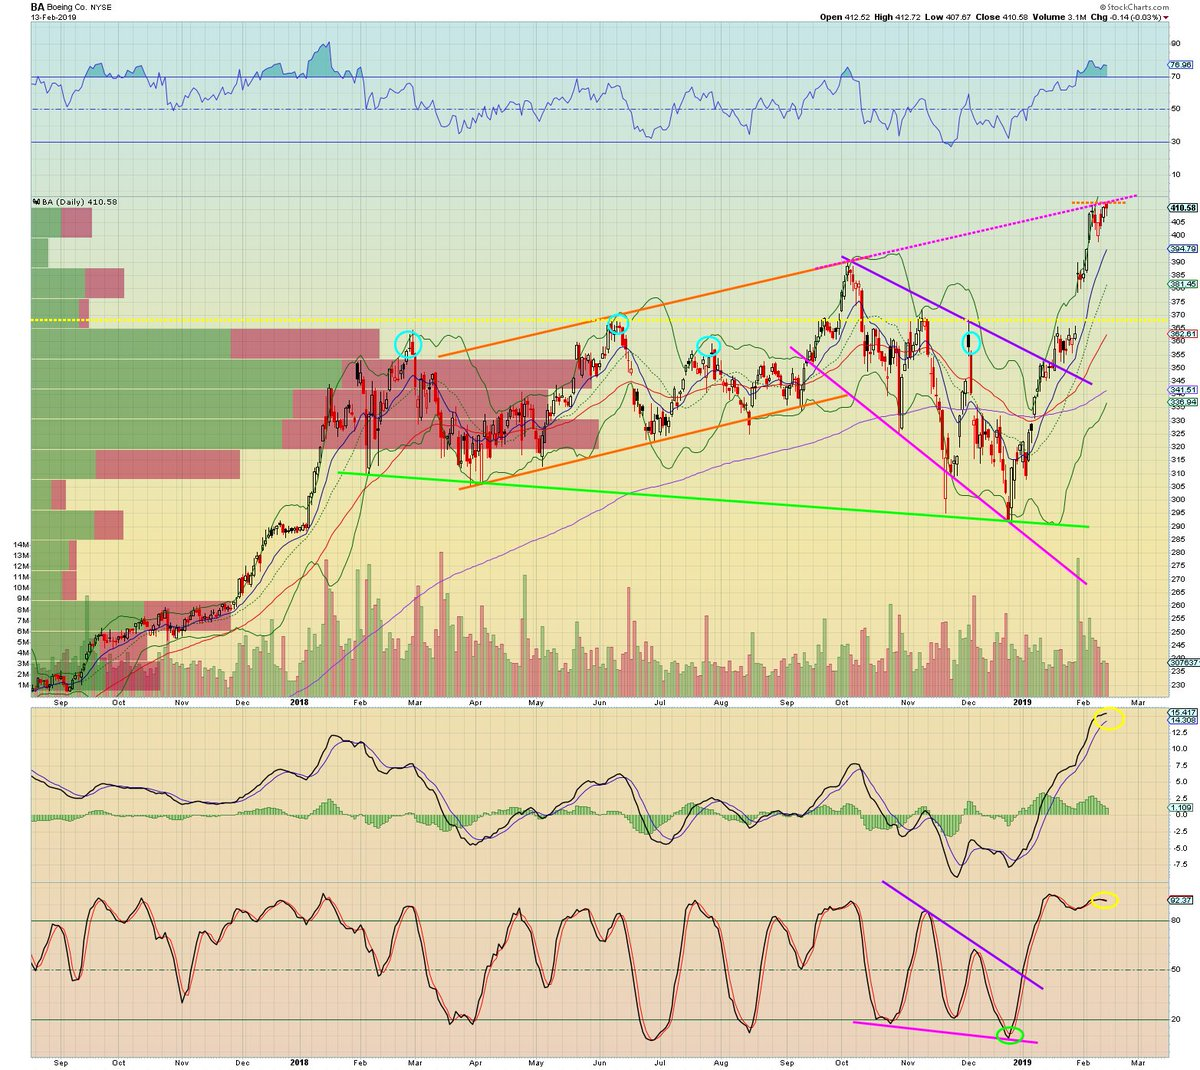 #Boeing Daily: $BA forming broadening topping wedge. Cannot believe I missed it earlier  (my bad). Orange line extended w/ magenta dashed TL to illustrate the wedge. Added green major support TL. MACD/Stochs about to roll, she may finally be done... #BA #Dowjones <br>http://pic.twitter.com/HjkM9XiV7Q